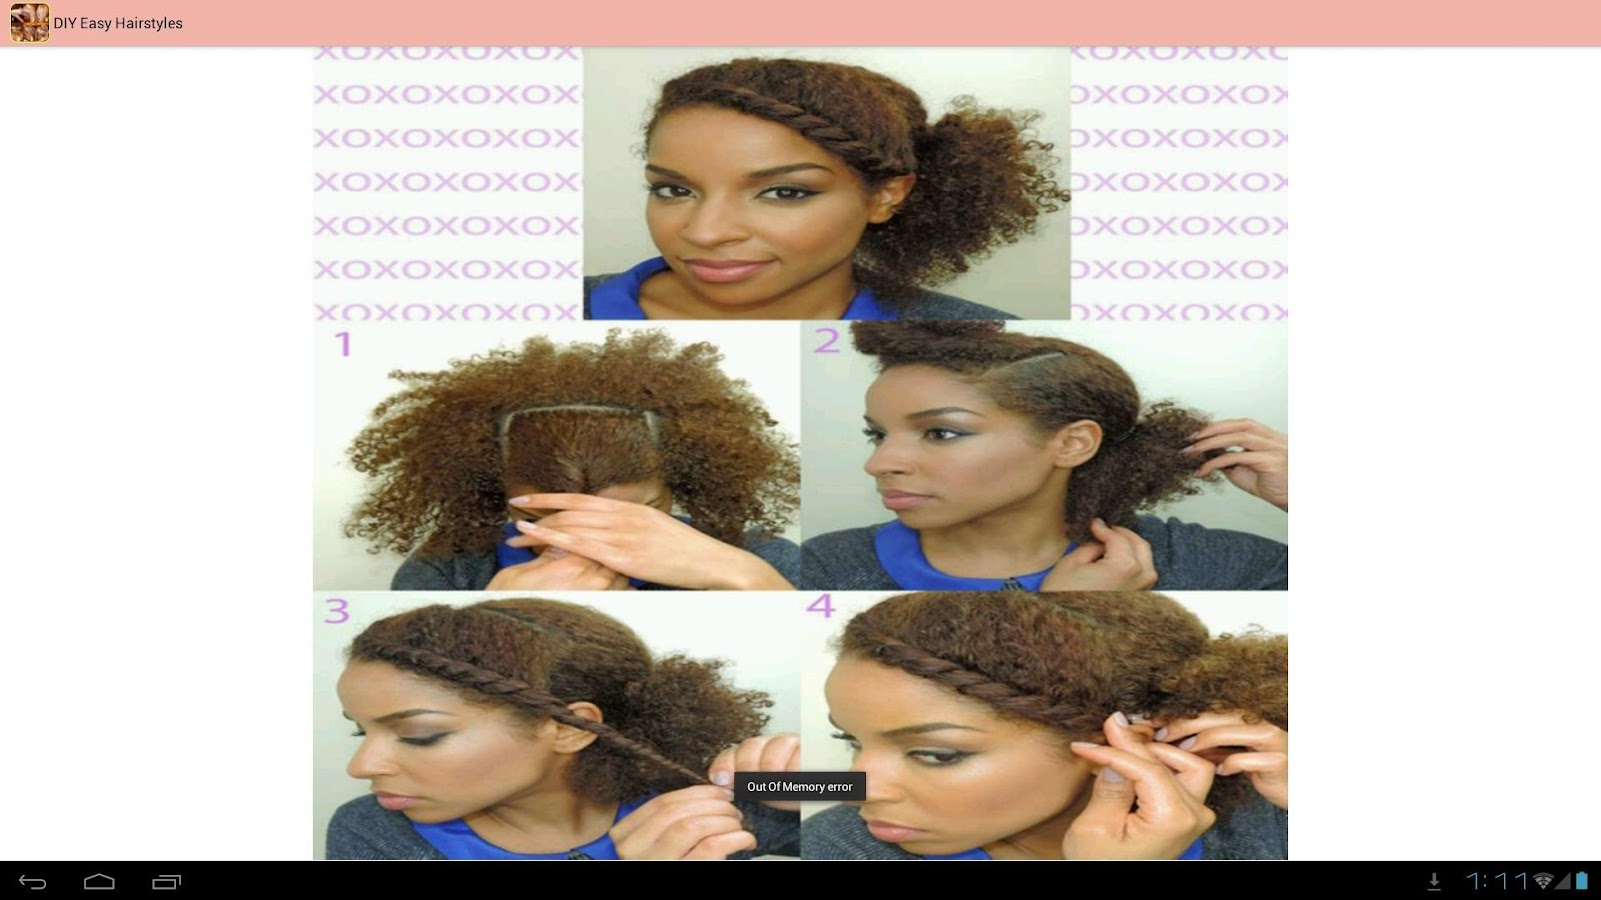 Remarkable Diy Easy Hairstyles Tutorials Android Apps On Google Play Short Hairstyles For Black Women Fulllsitofus